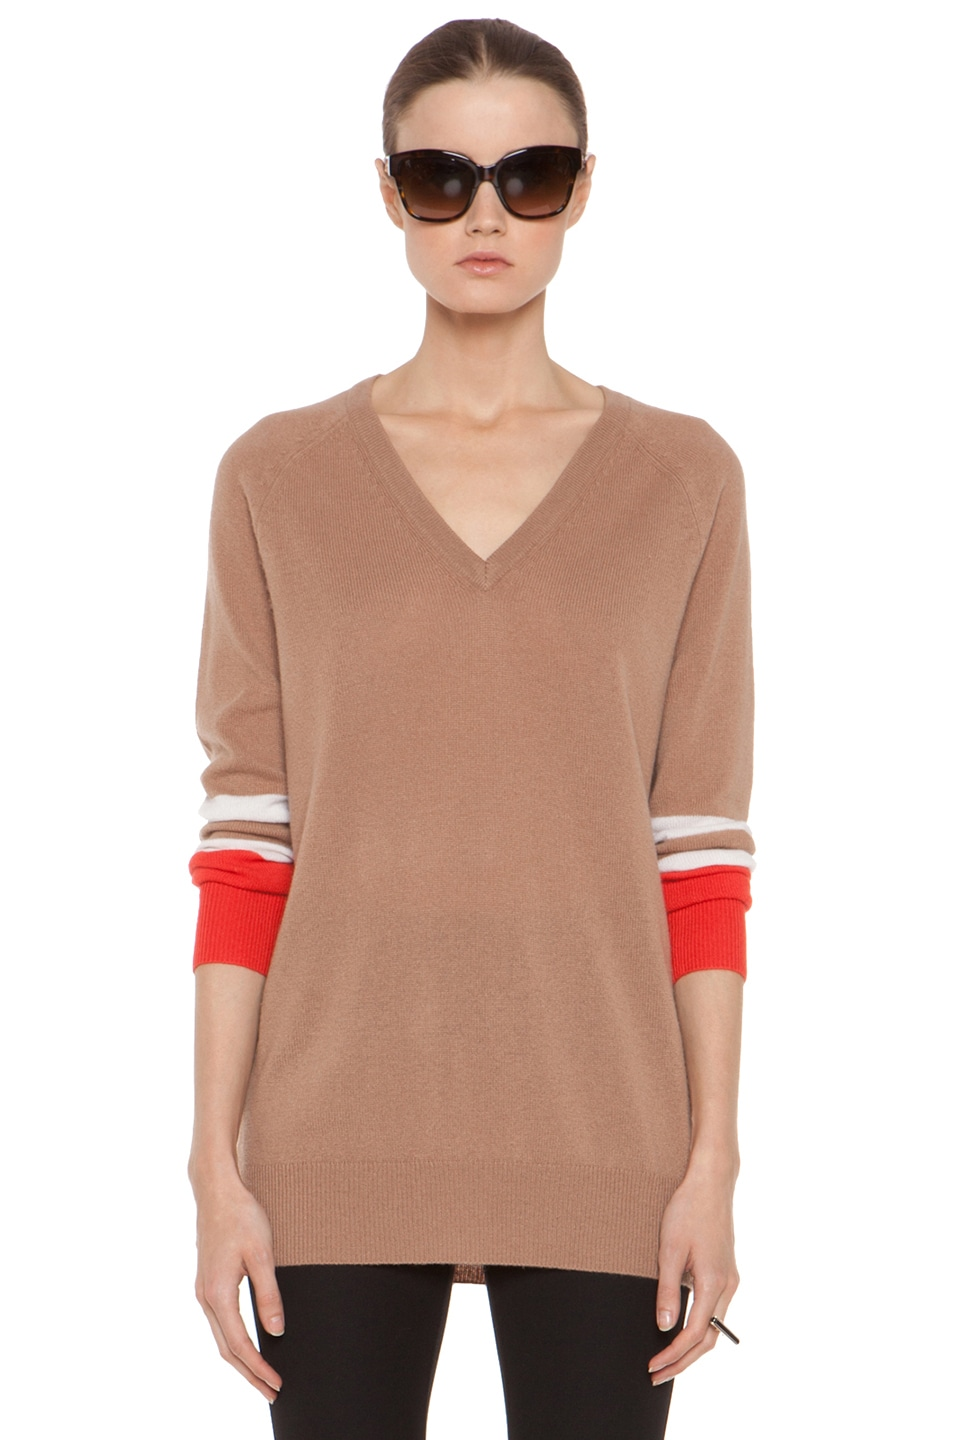 Image 1 of Equipment Asher V Neck Cashmere Colorblock Pullover in Camel